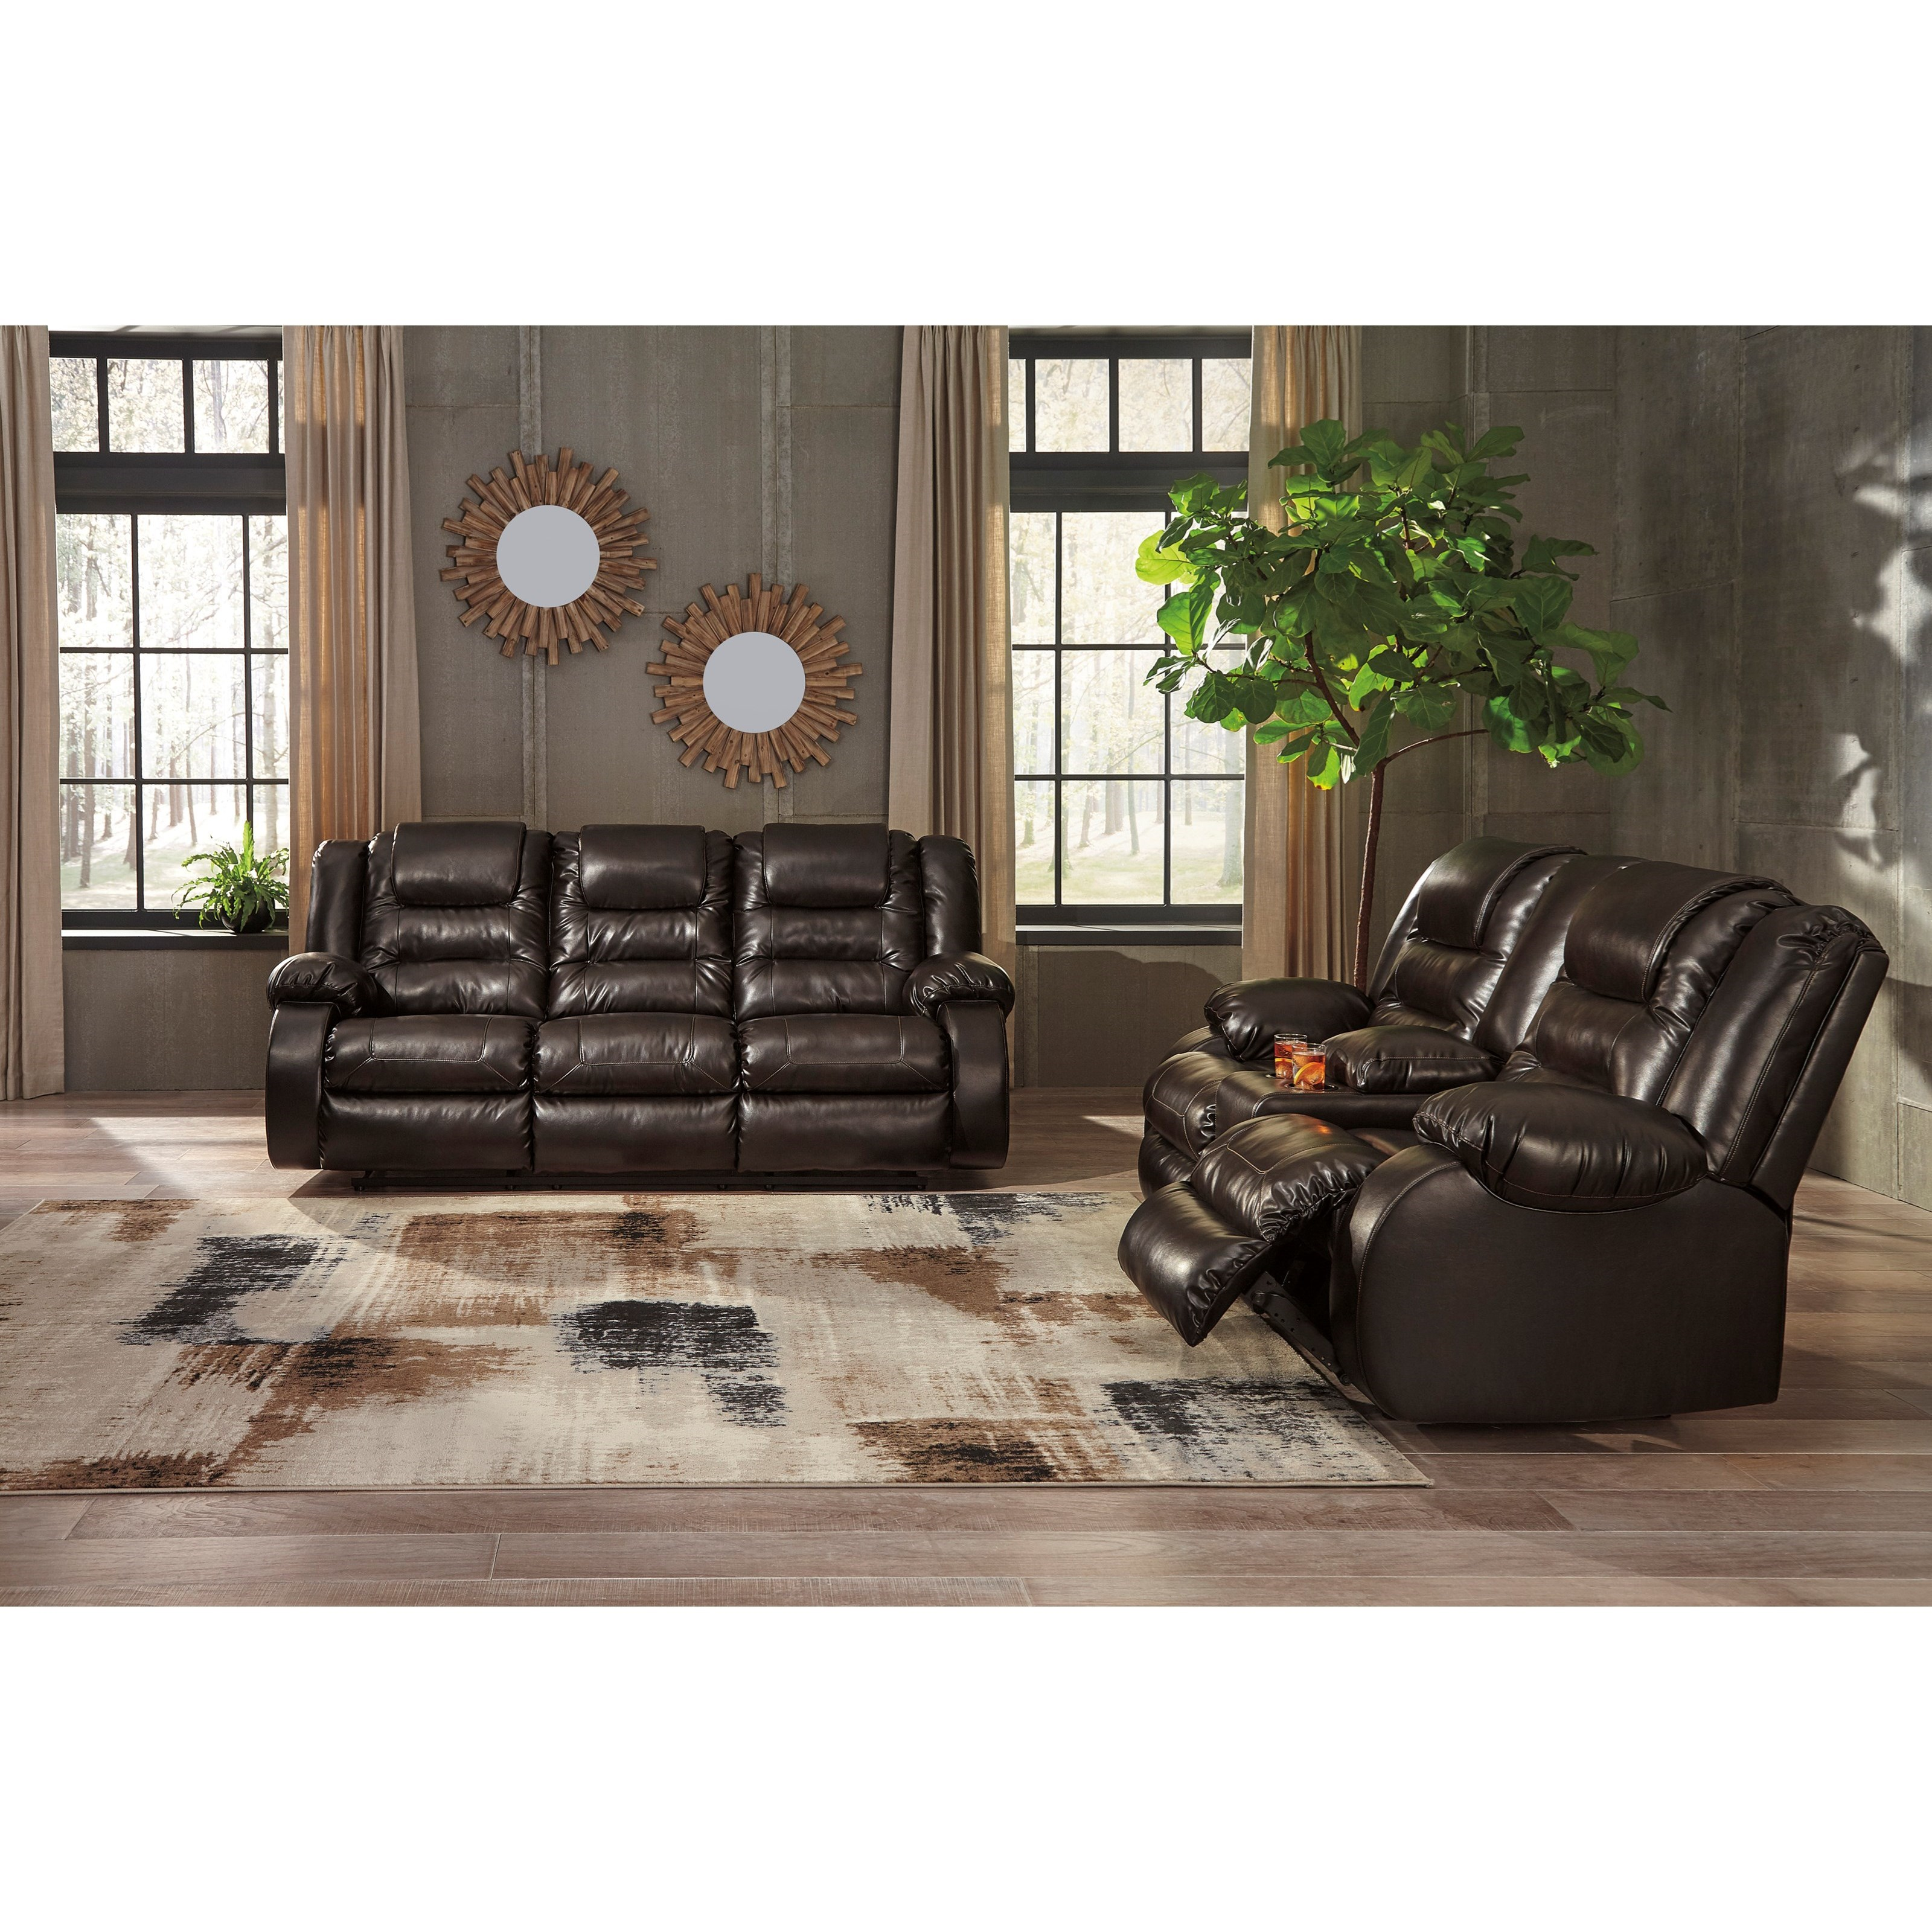 Ashley Furniture Current Sales Ad: Signature Design By Ashley Vacherie Reclining Living Room